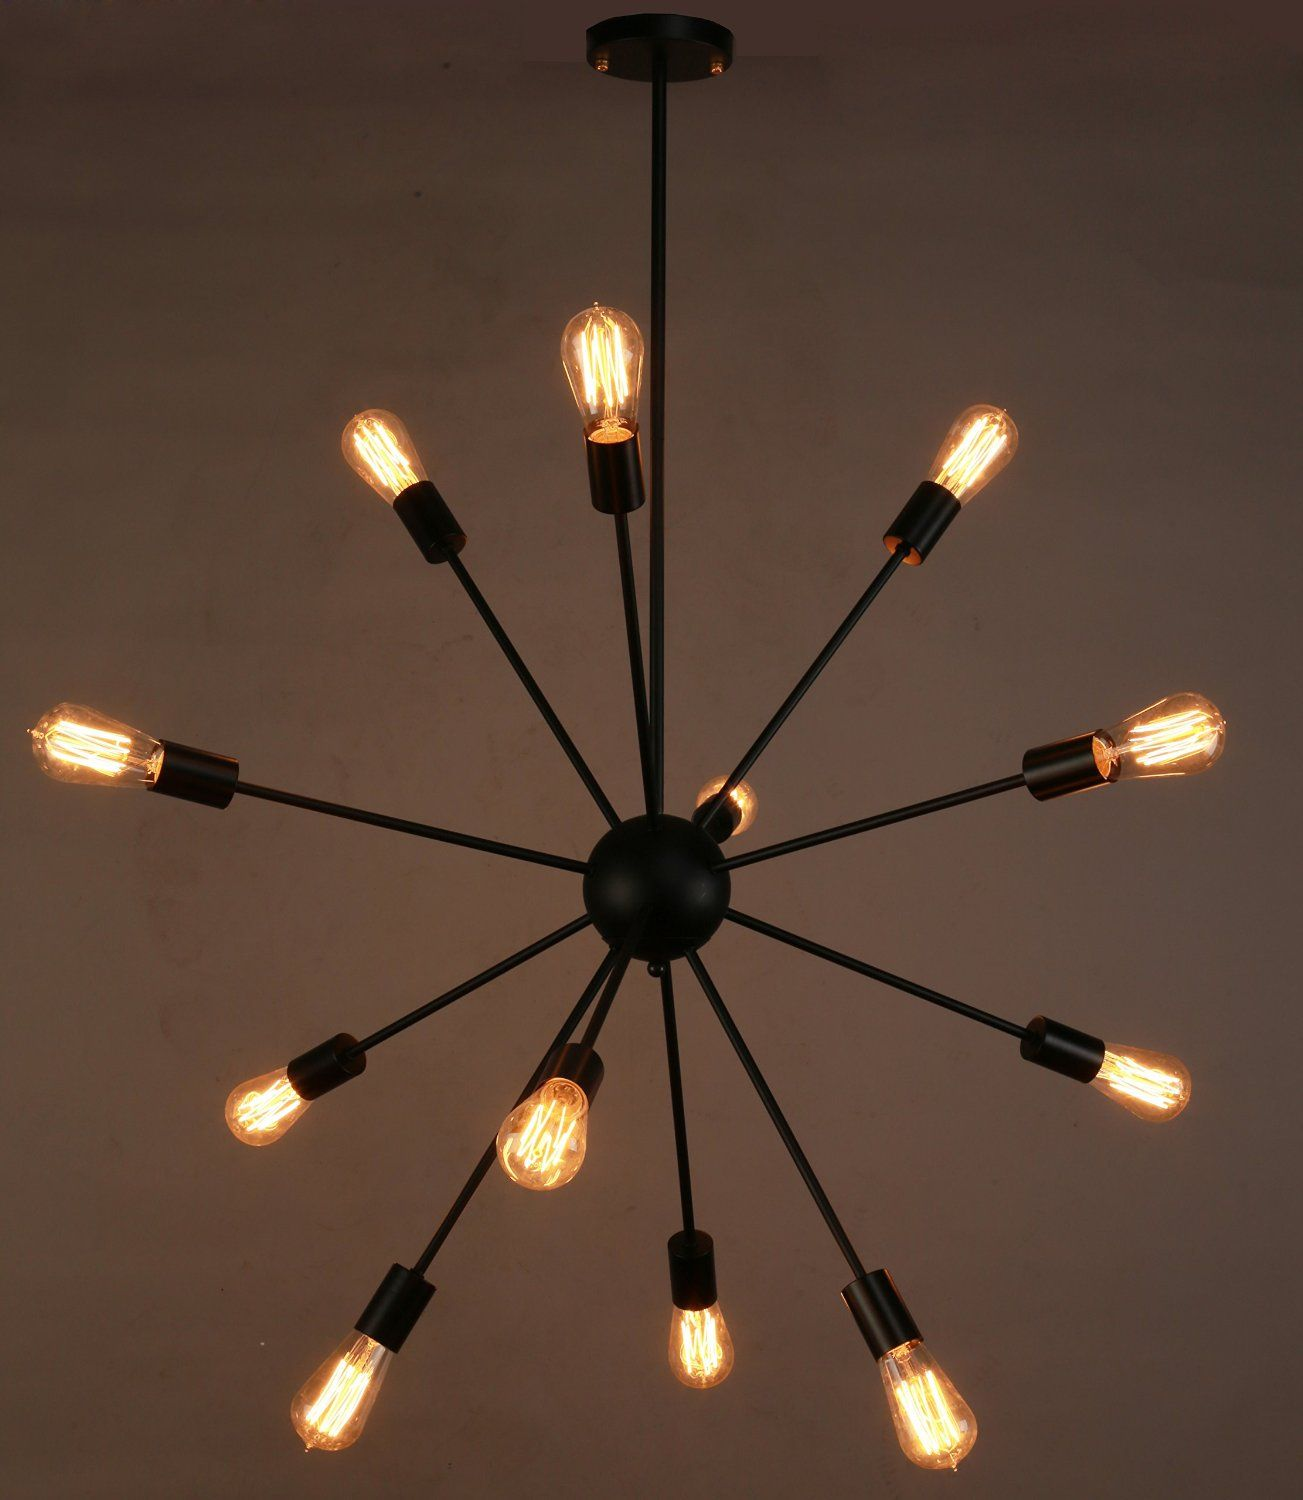 12 Inspirations For Home Improvement With Spanish Home: Amazon.com: Vintage E27 Industrial Fixture Retro Pendant